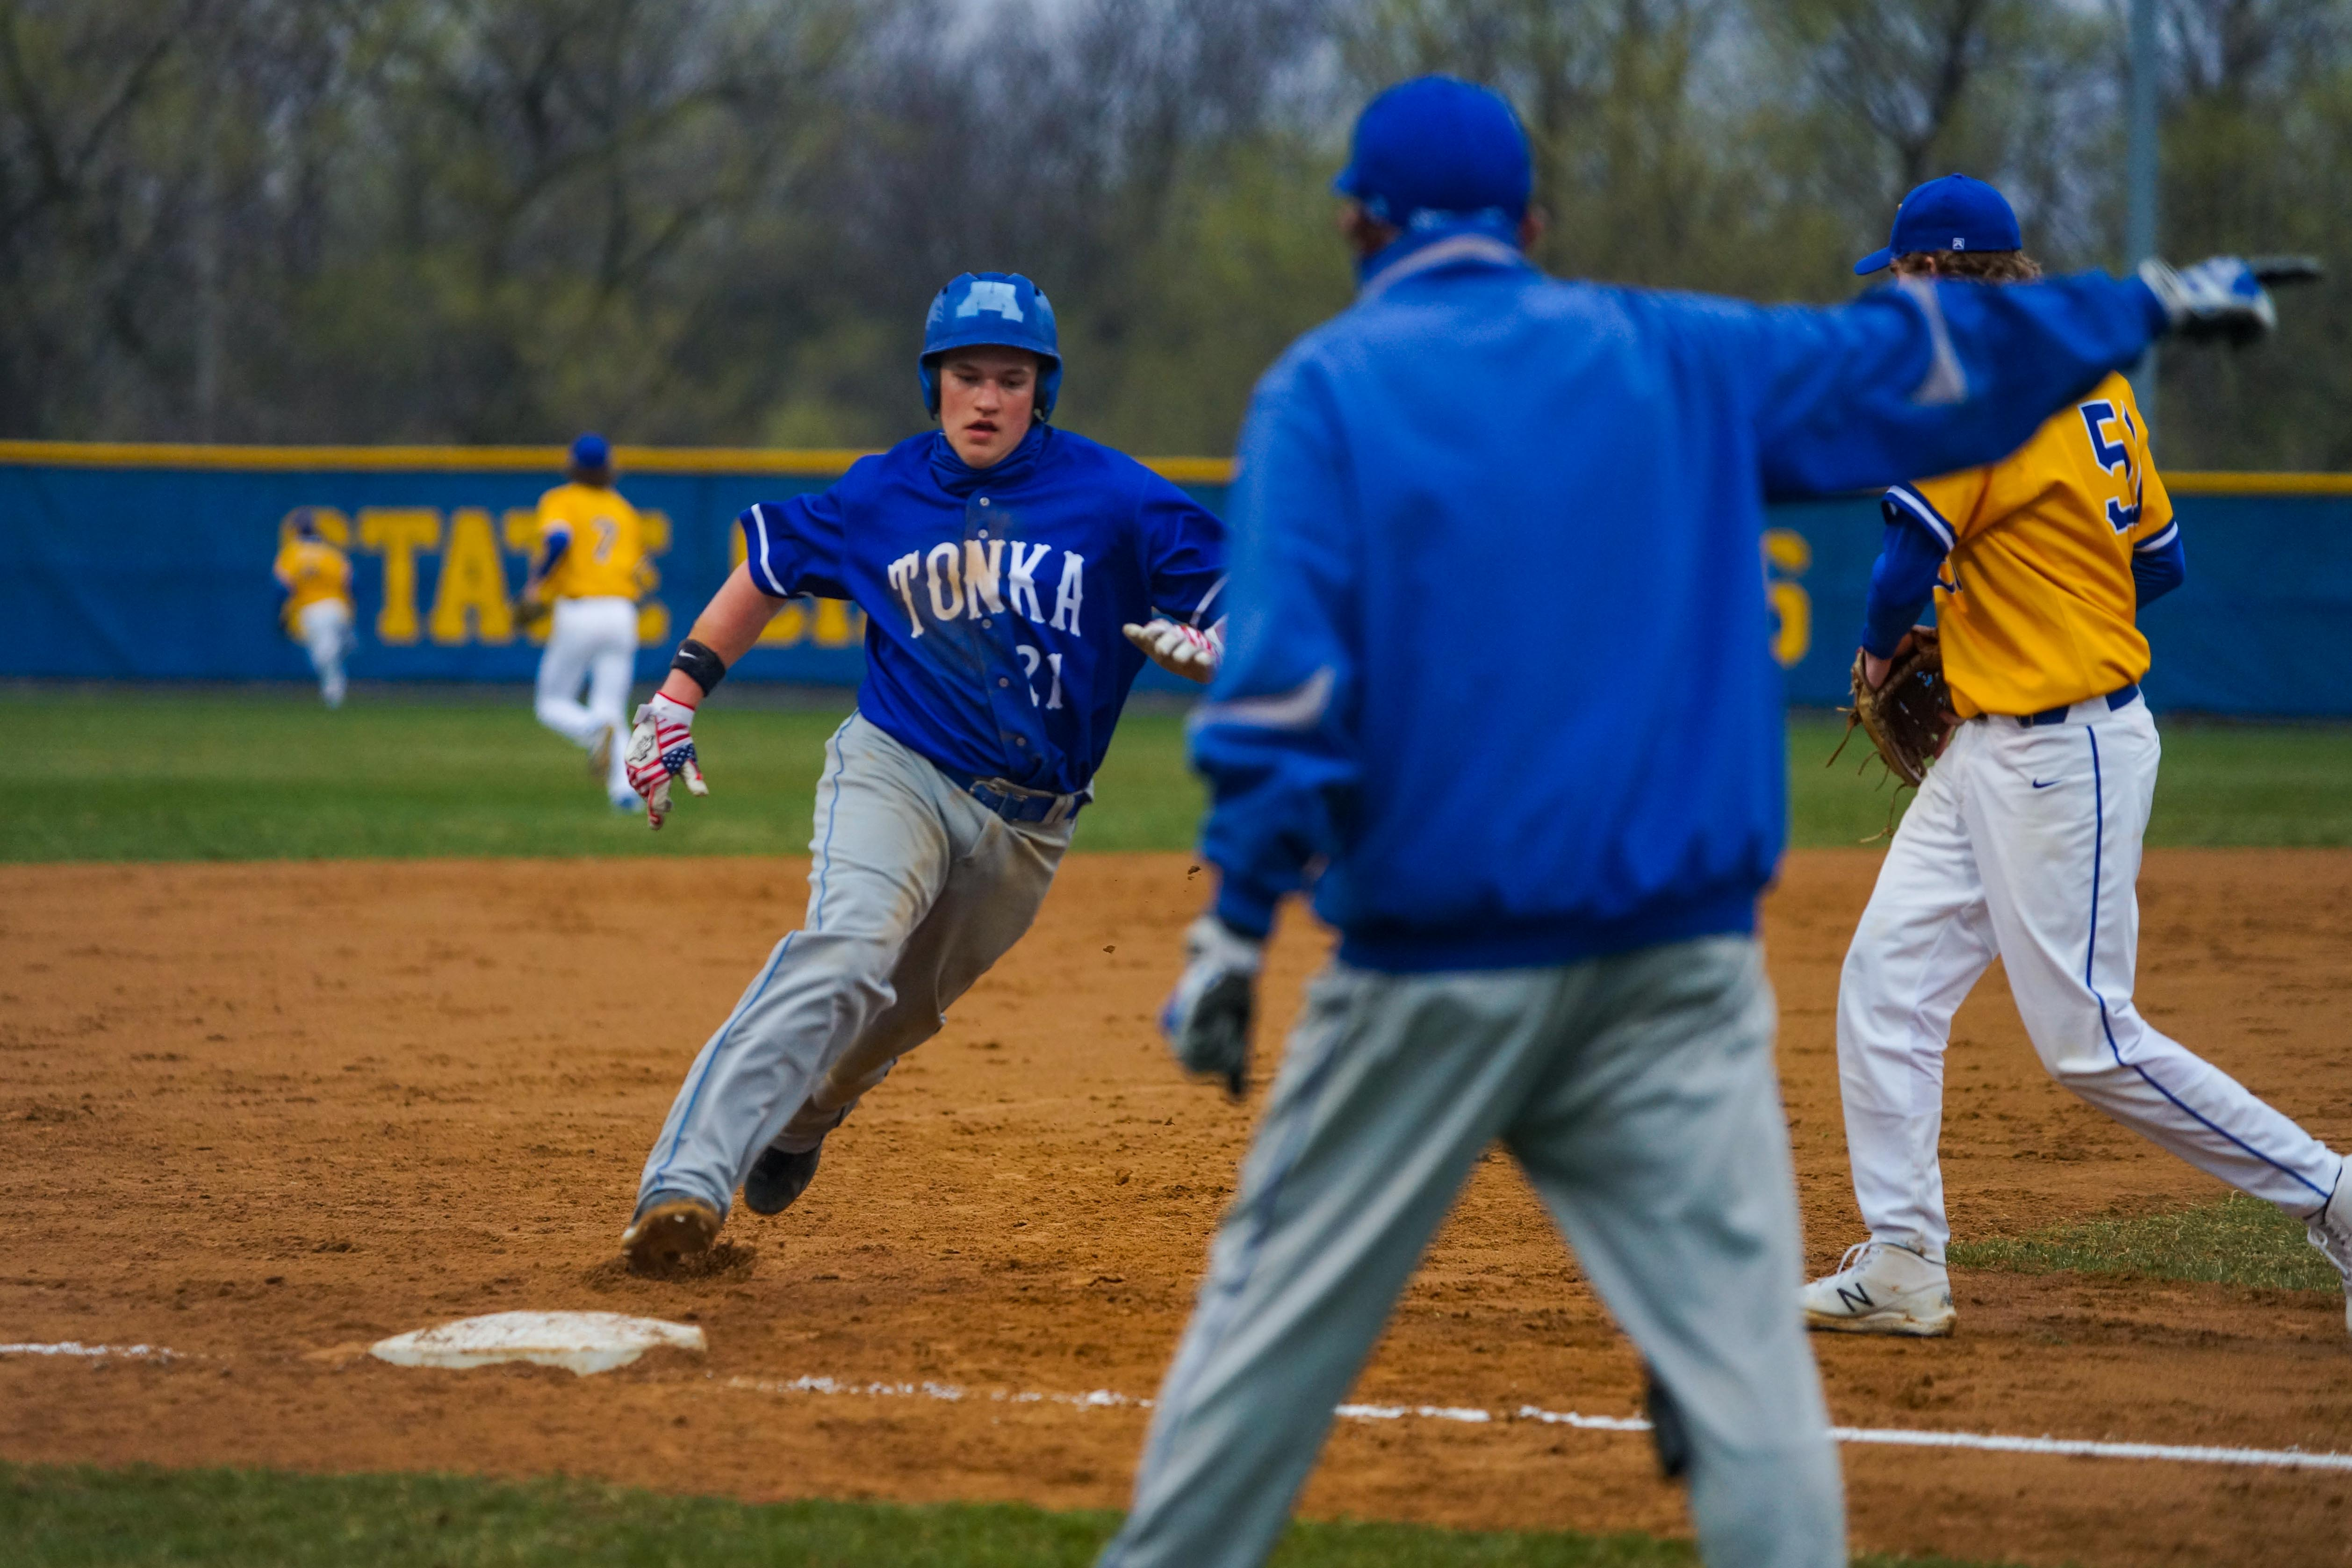 Minnetonka coach Paul Twenge sends a runner around third during the second inning to score the Skippers' only run of the game in in a 4-1 loss Friday at Wayzata. Photo by Korey McDermott, SportsEngine